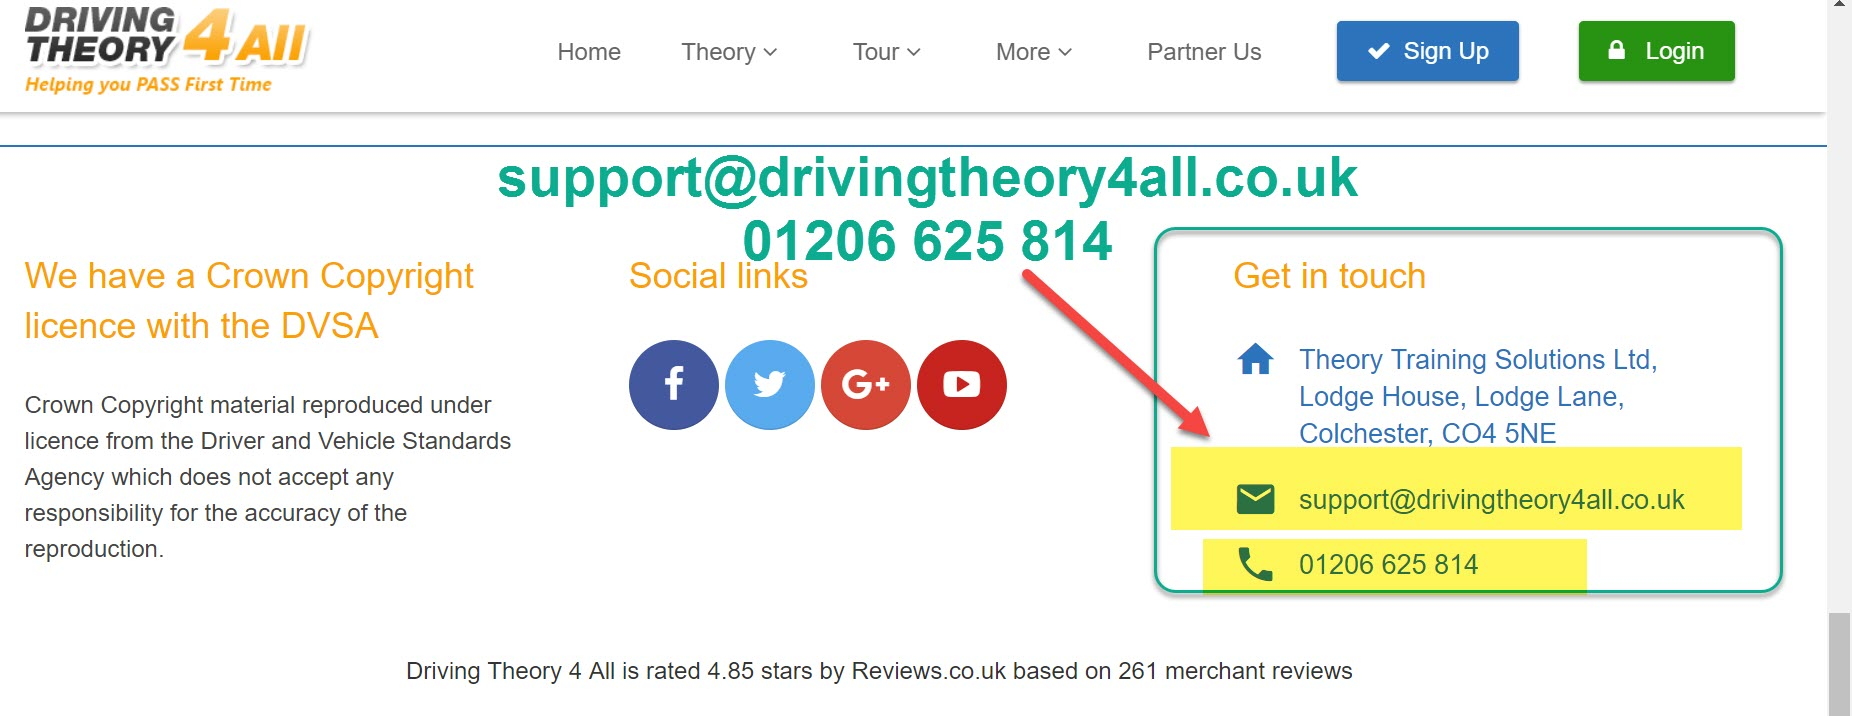 drivingtheory4all contact number